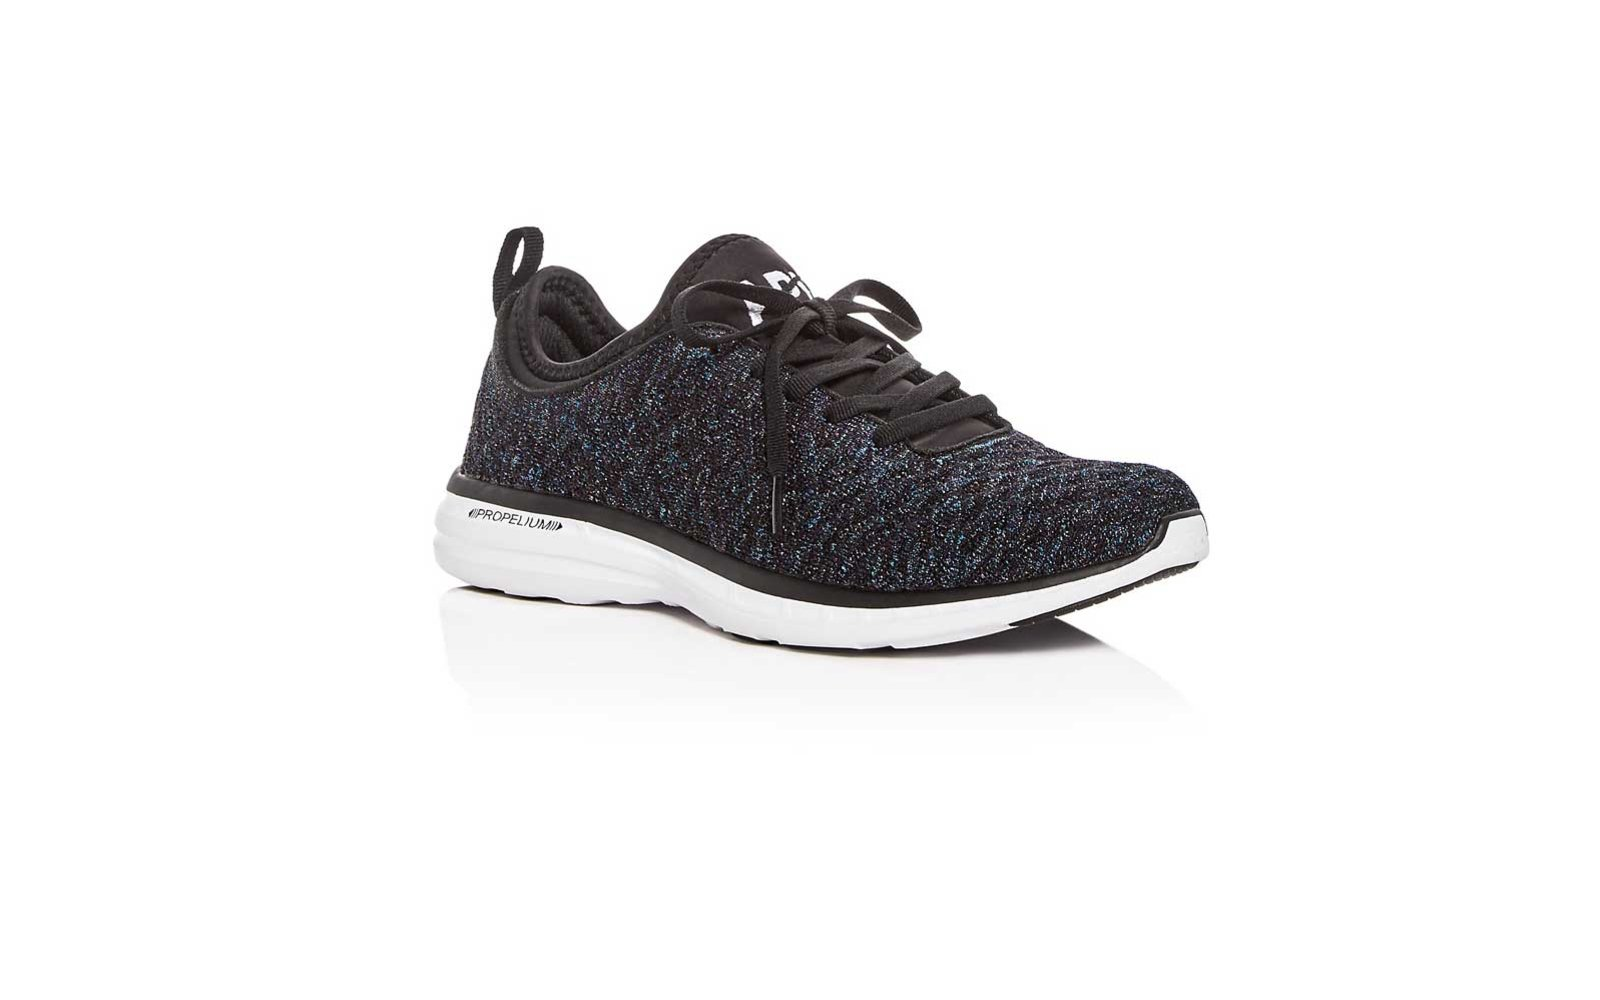 4. APL Athletic Propulsion Labs Women's TechLoom Phantom Black Lace Up Sneakers